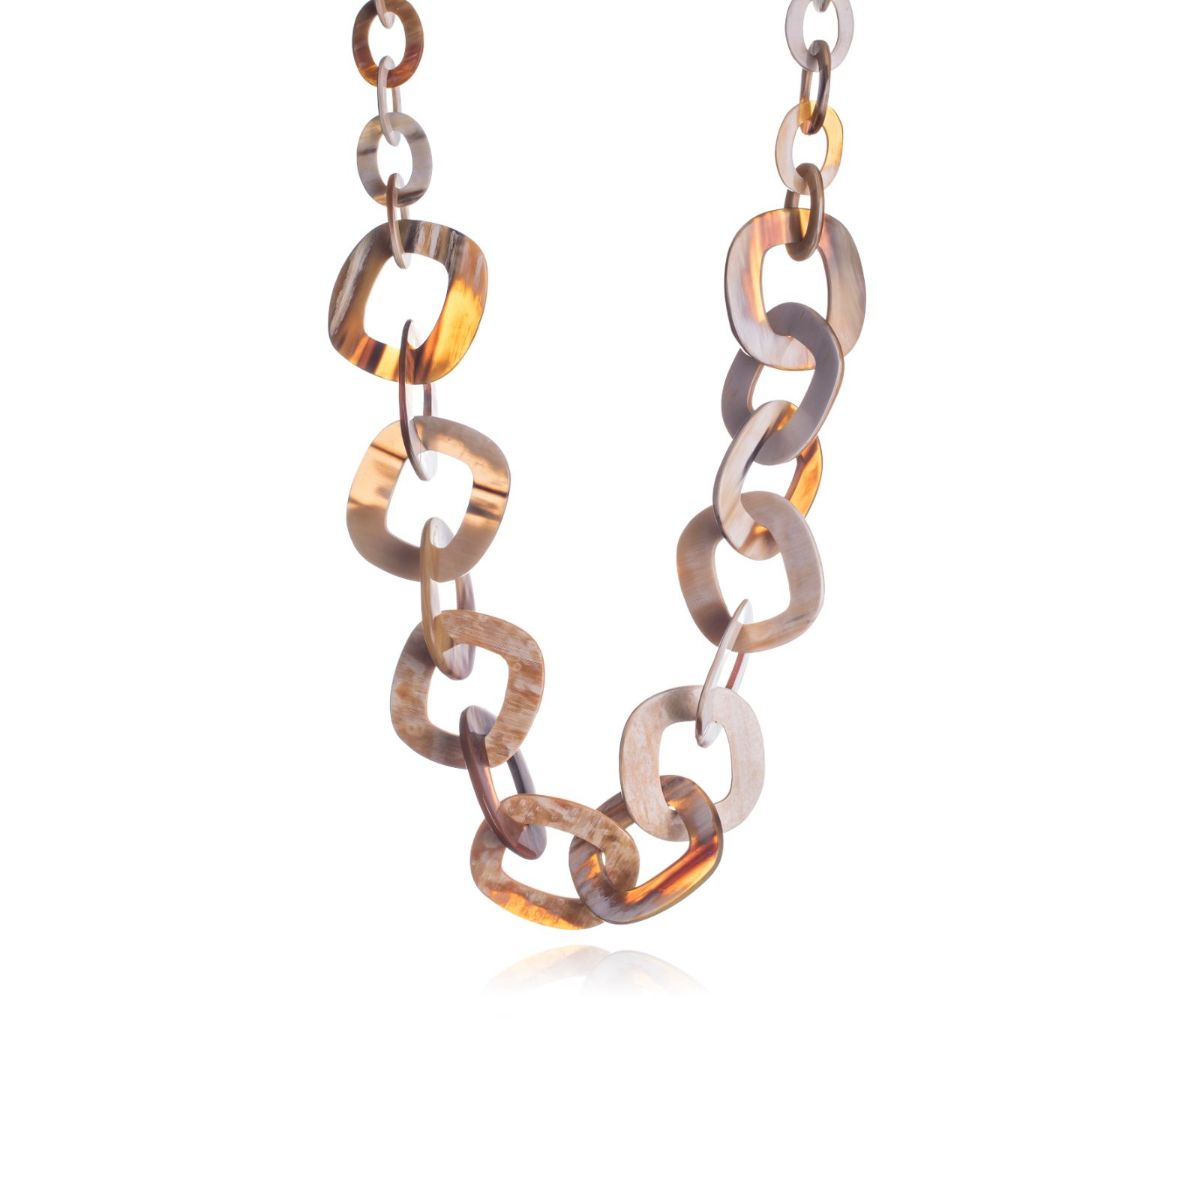 Castro long necklace natural horn light chain